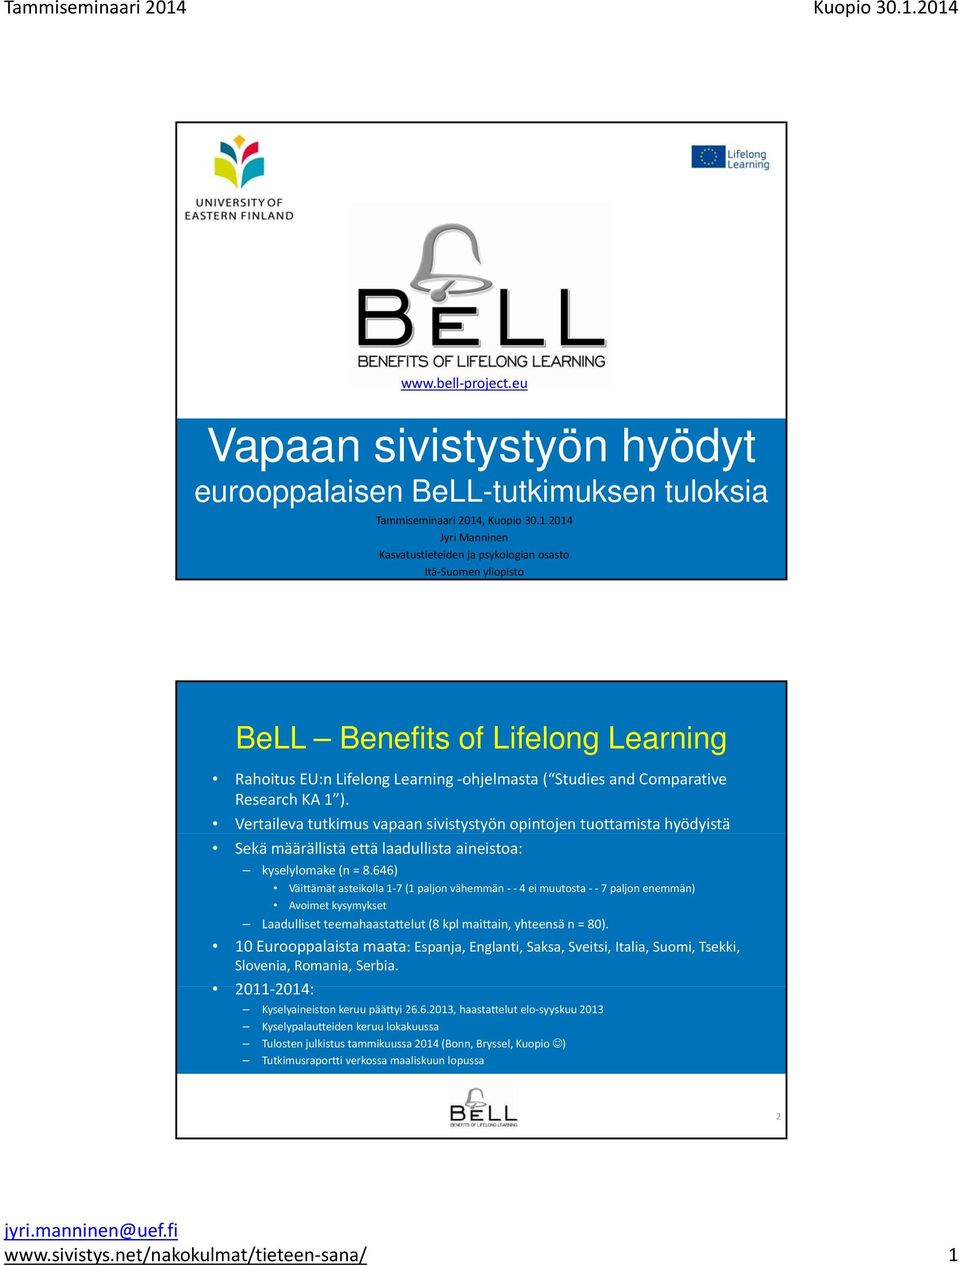 2014 Jyri Manninen Kasvatustieteiden ja psykologian osasto Itä Suomen yliopisto BeLL Benefits of Lifelong Learning Rahoitus EU:n Lifelong Learning ohjelmasta ( Studies and Comparative Research KA 1 ).